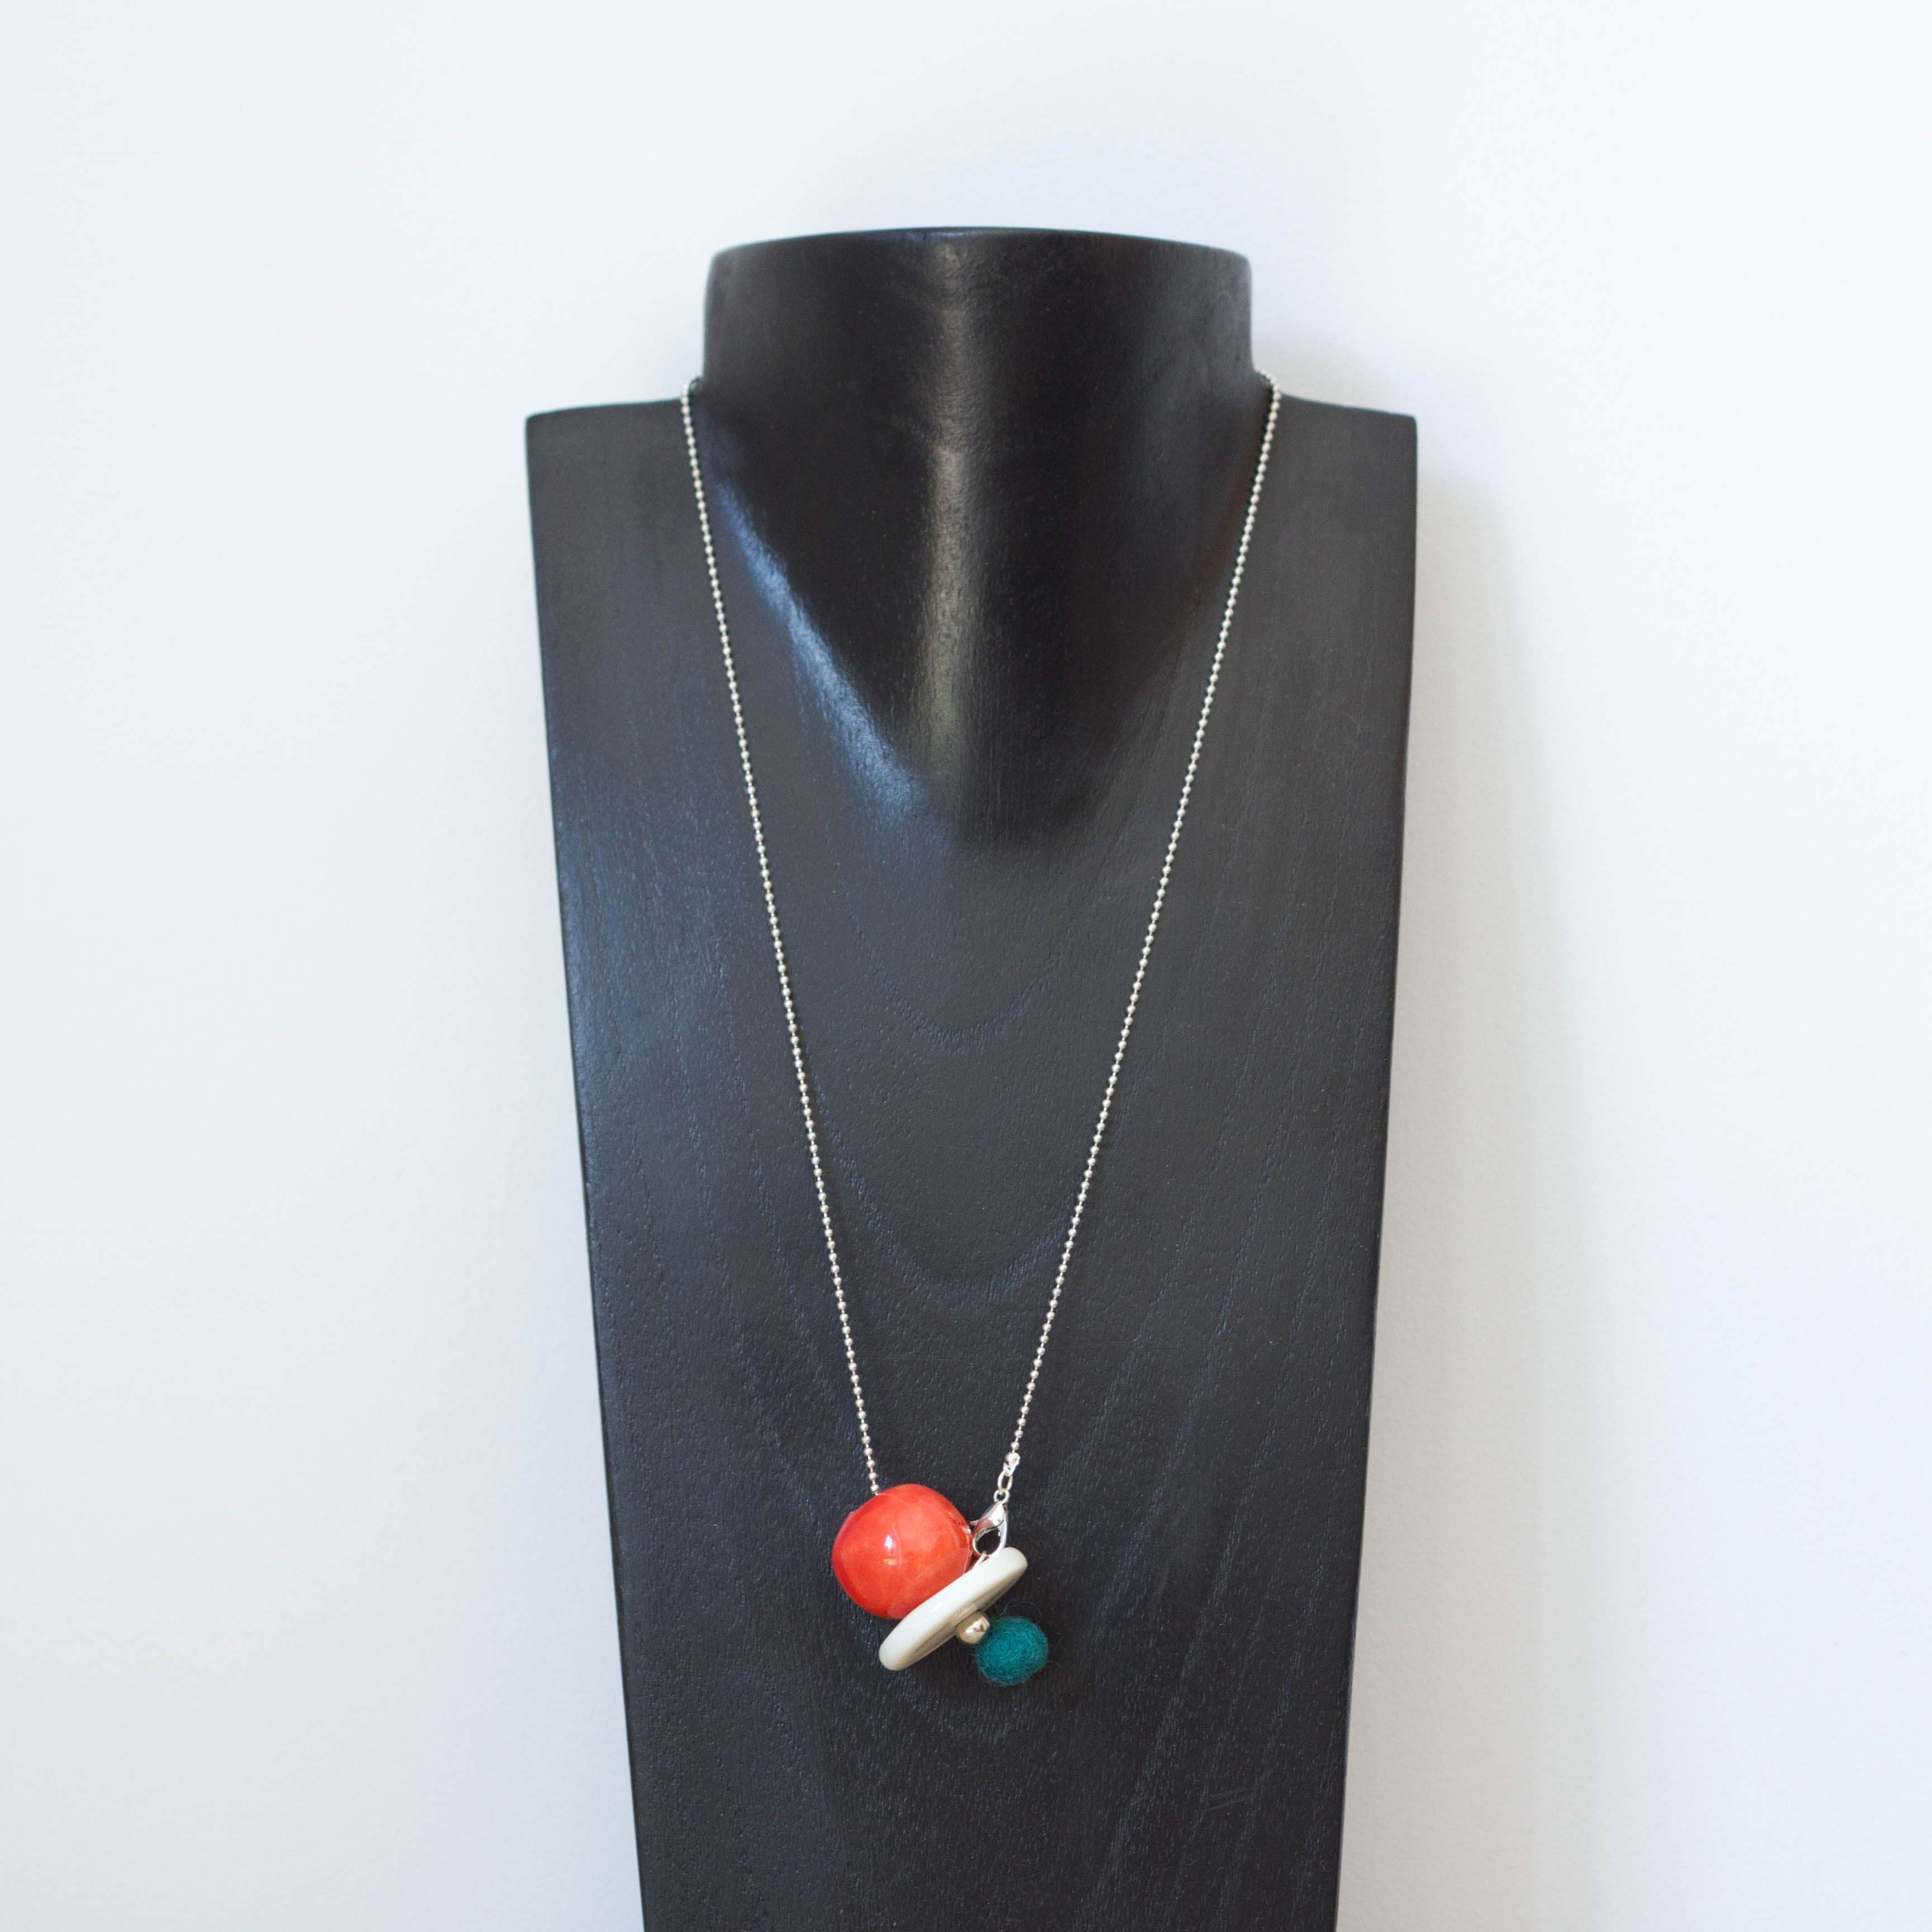 Collier Pom pom rouge blanc -il fait si beau-ceramique made in france